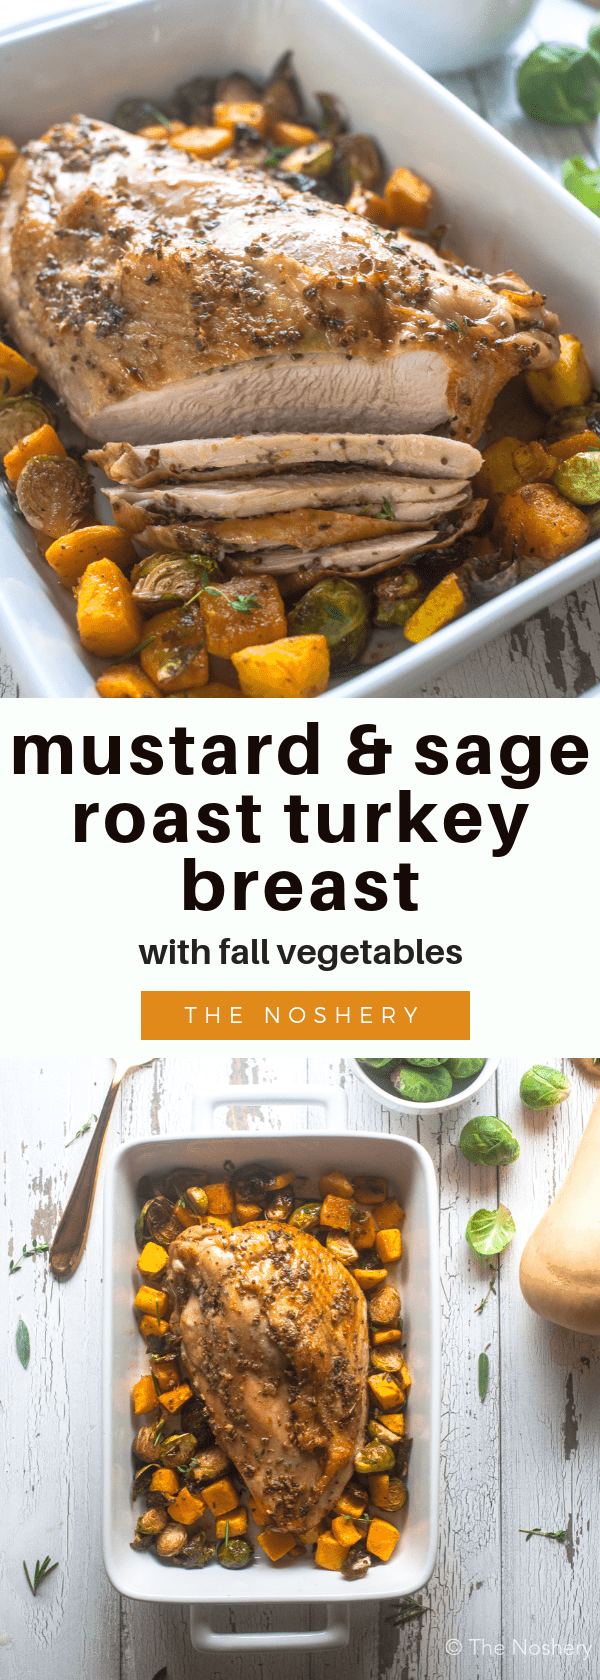 Mustard & Sage Roast Turkey Breast with Fall Vegetables | This turkey breast is rubbed with a mustard herb mixture and then roasted on a bed of butternut and brussels sprouts. This is perfect for an intimate Thanksgiving or fall-inspired dinner. | The Noshery